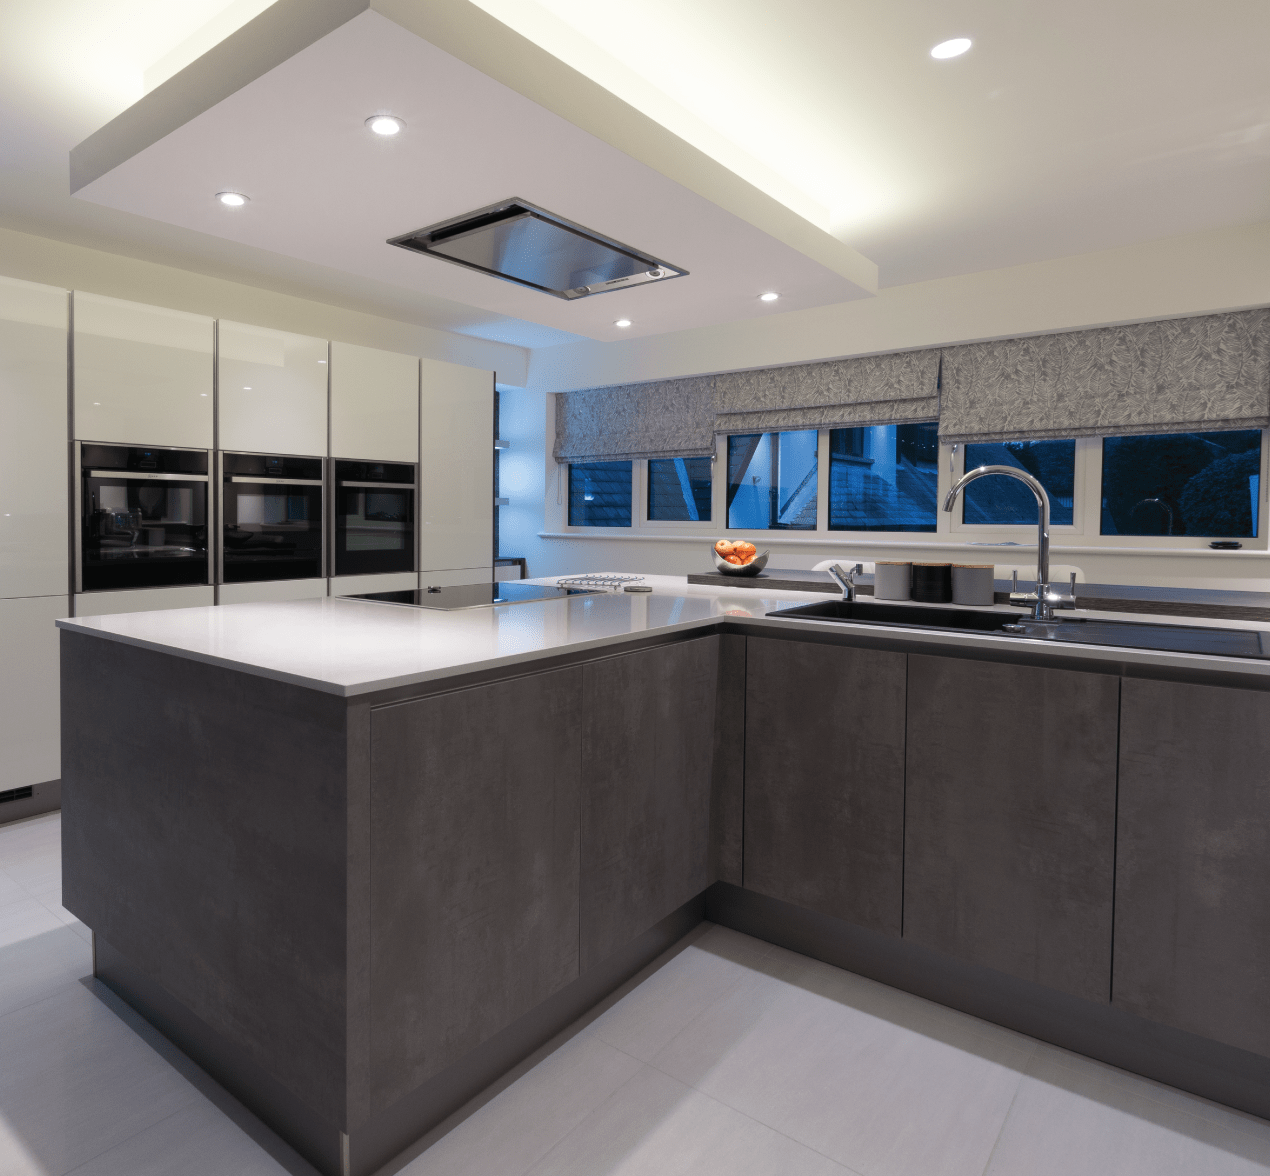 Kitchen Design Centre Hollinwood State Of The Art Designer Kitchen In Rawtenstall Kitchen